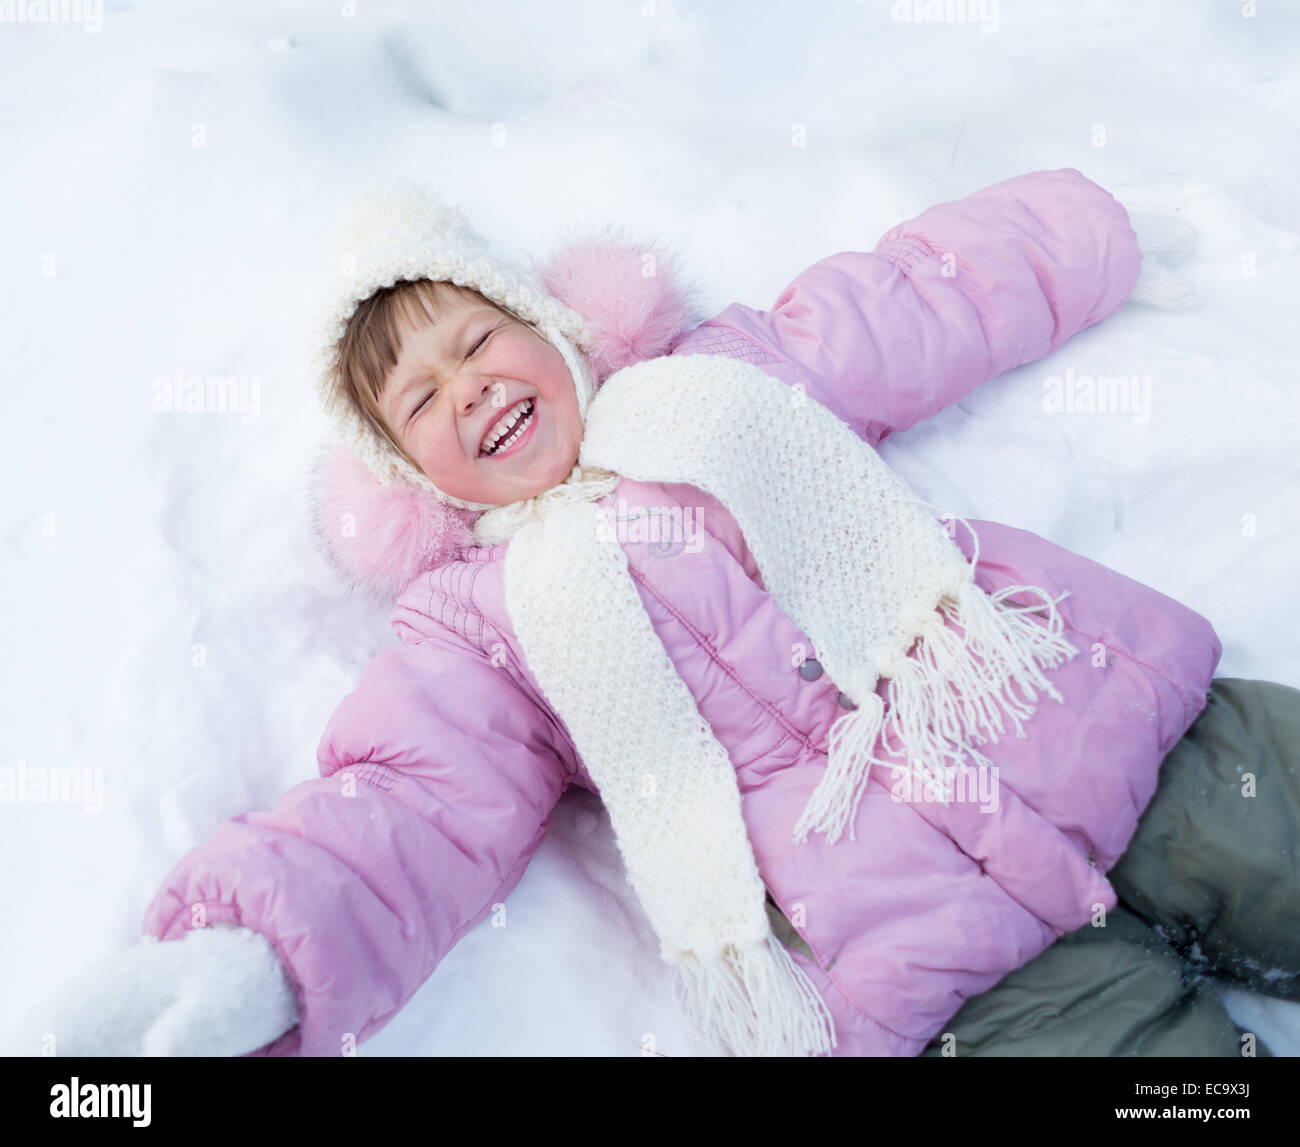 Happy kid couché sur la neige en hiver piscine Photo Stock